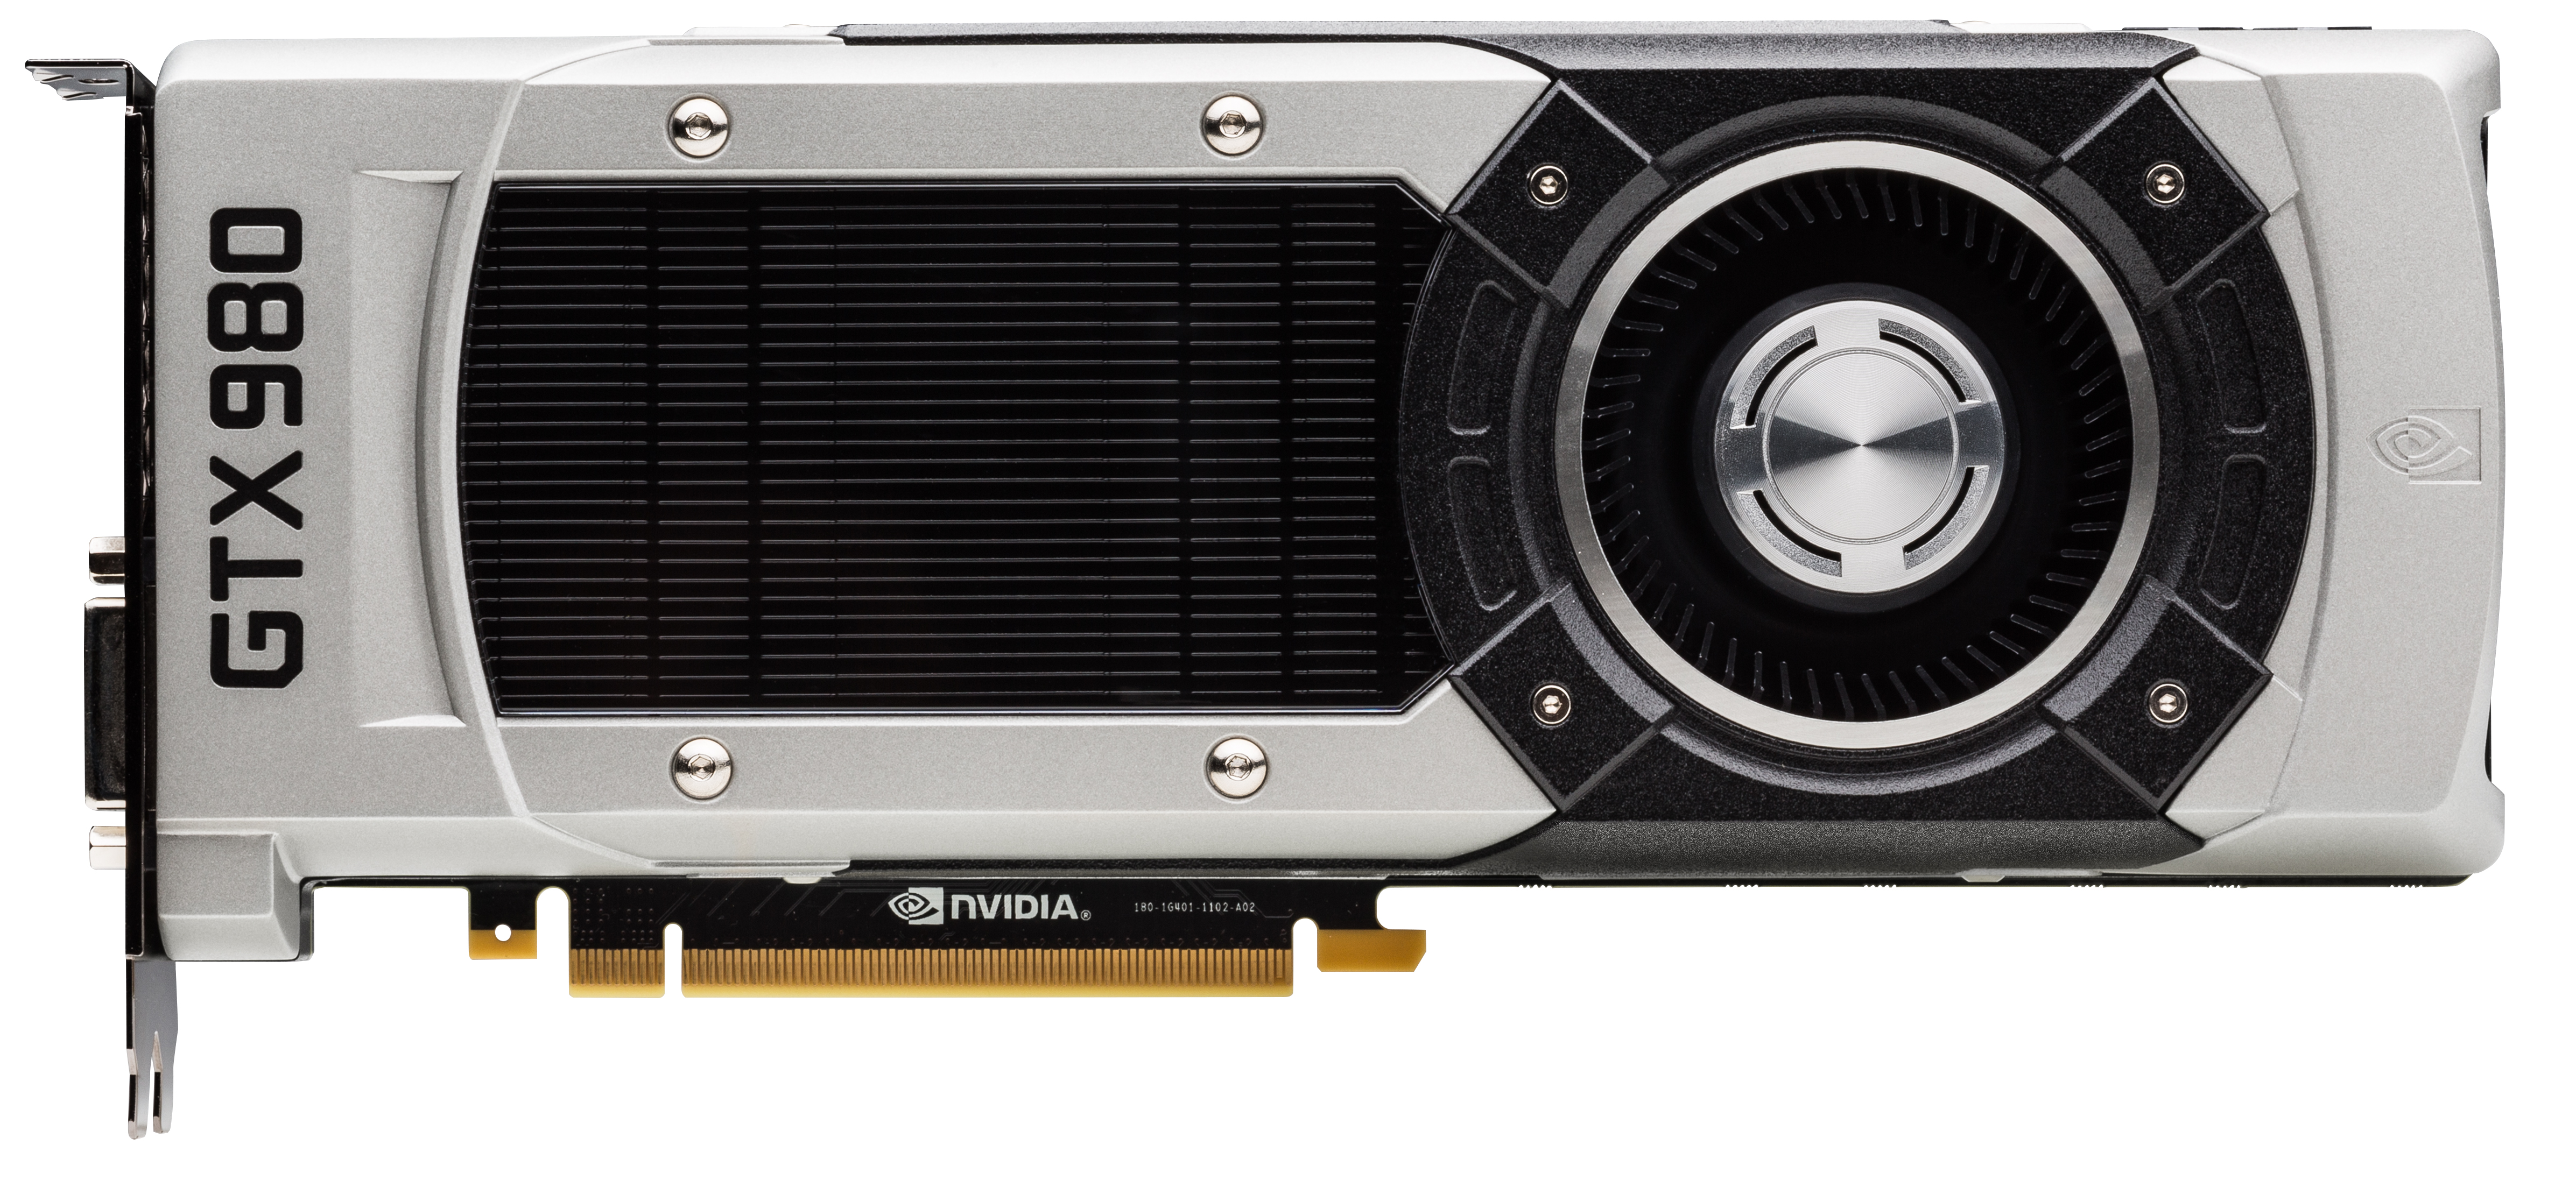 Launching Today: GTX 980 & GTX 970 - The NVIDIA GeForce GTX 980 Review: Maxwell Mark 2